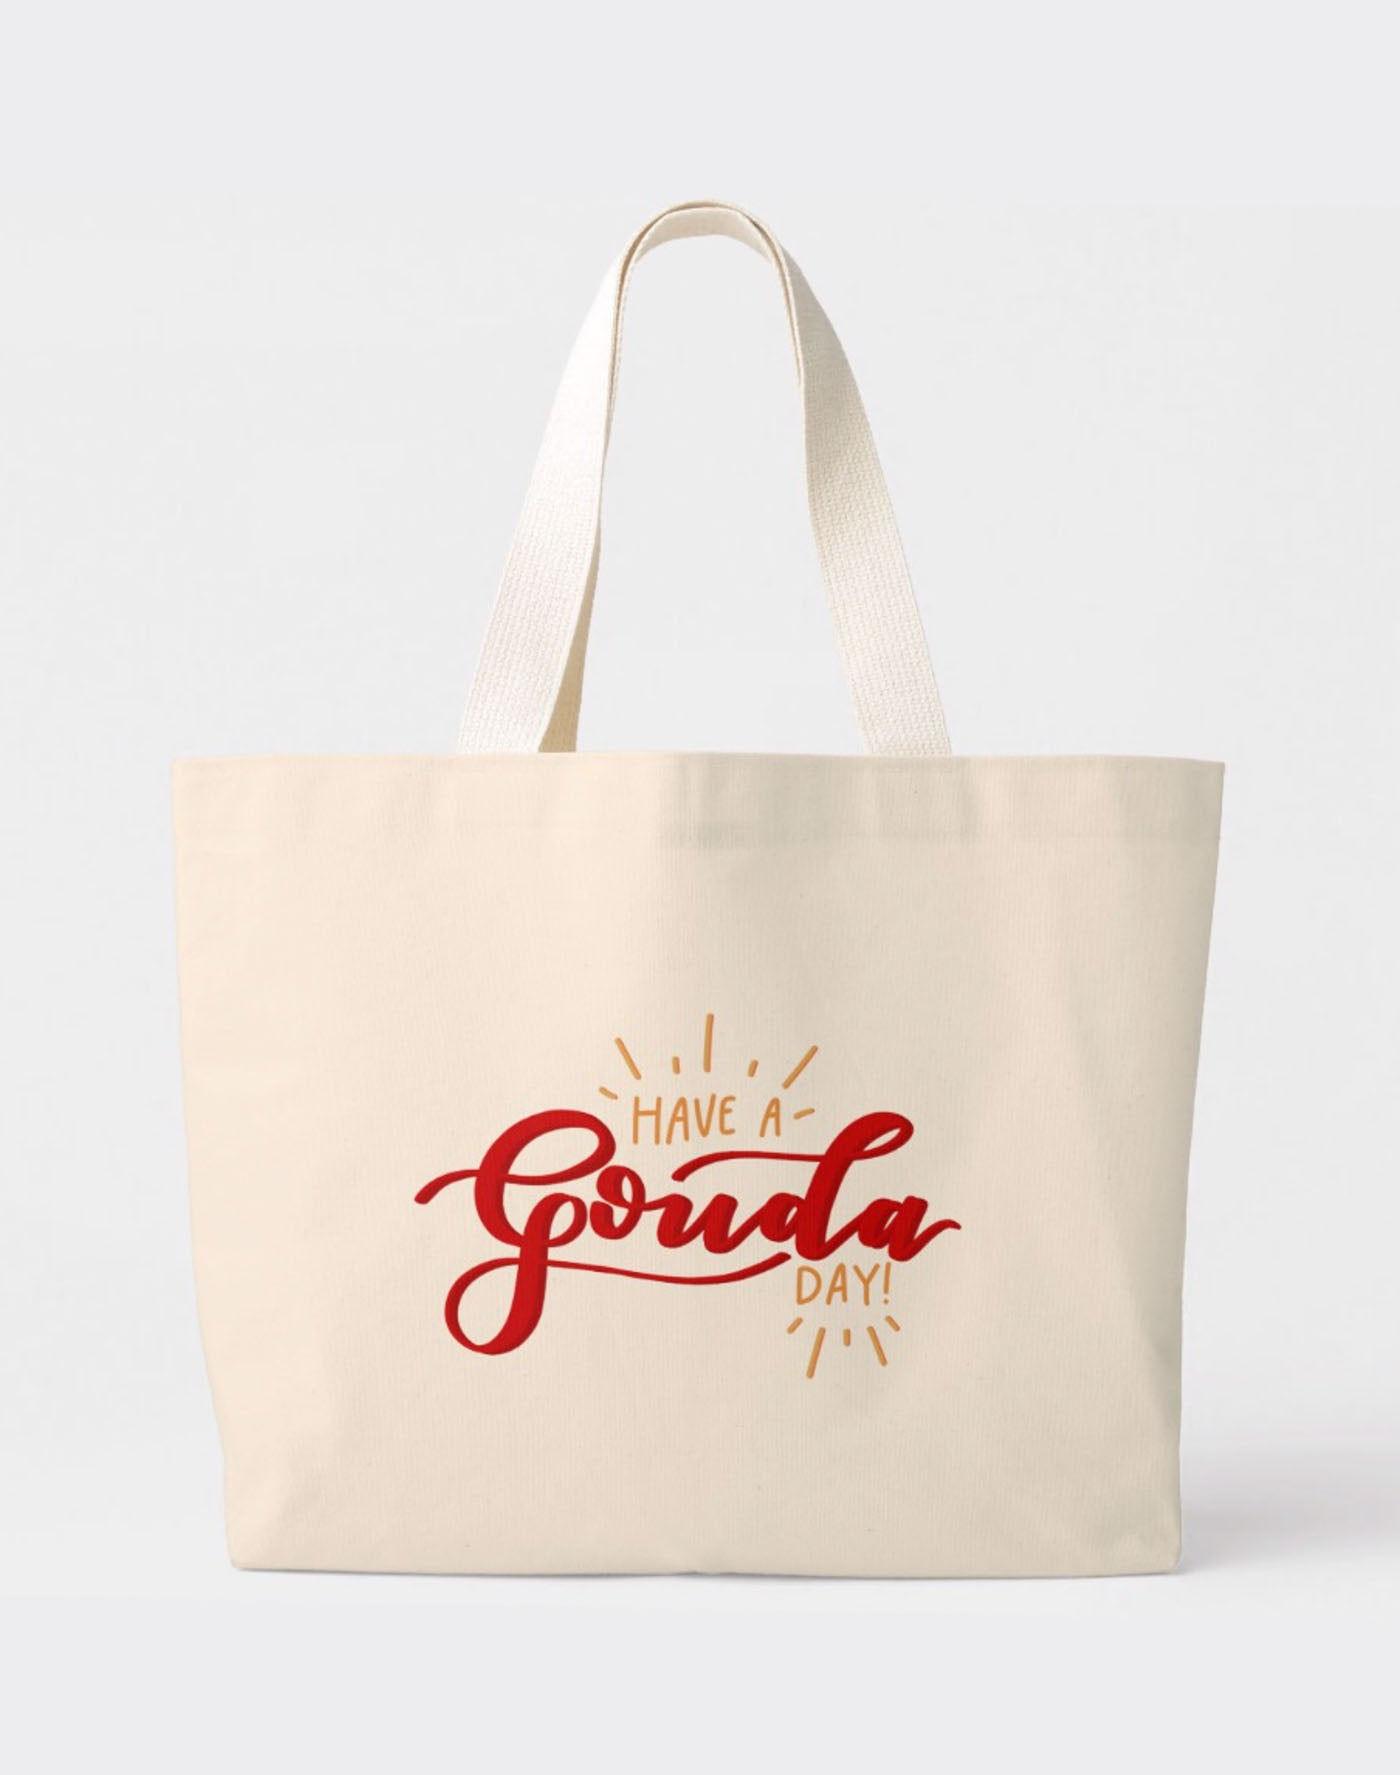 Gouda Day • Tote Bag